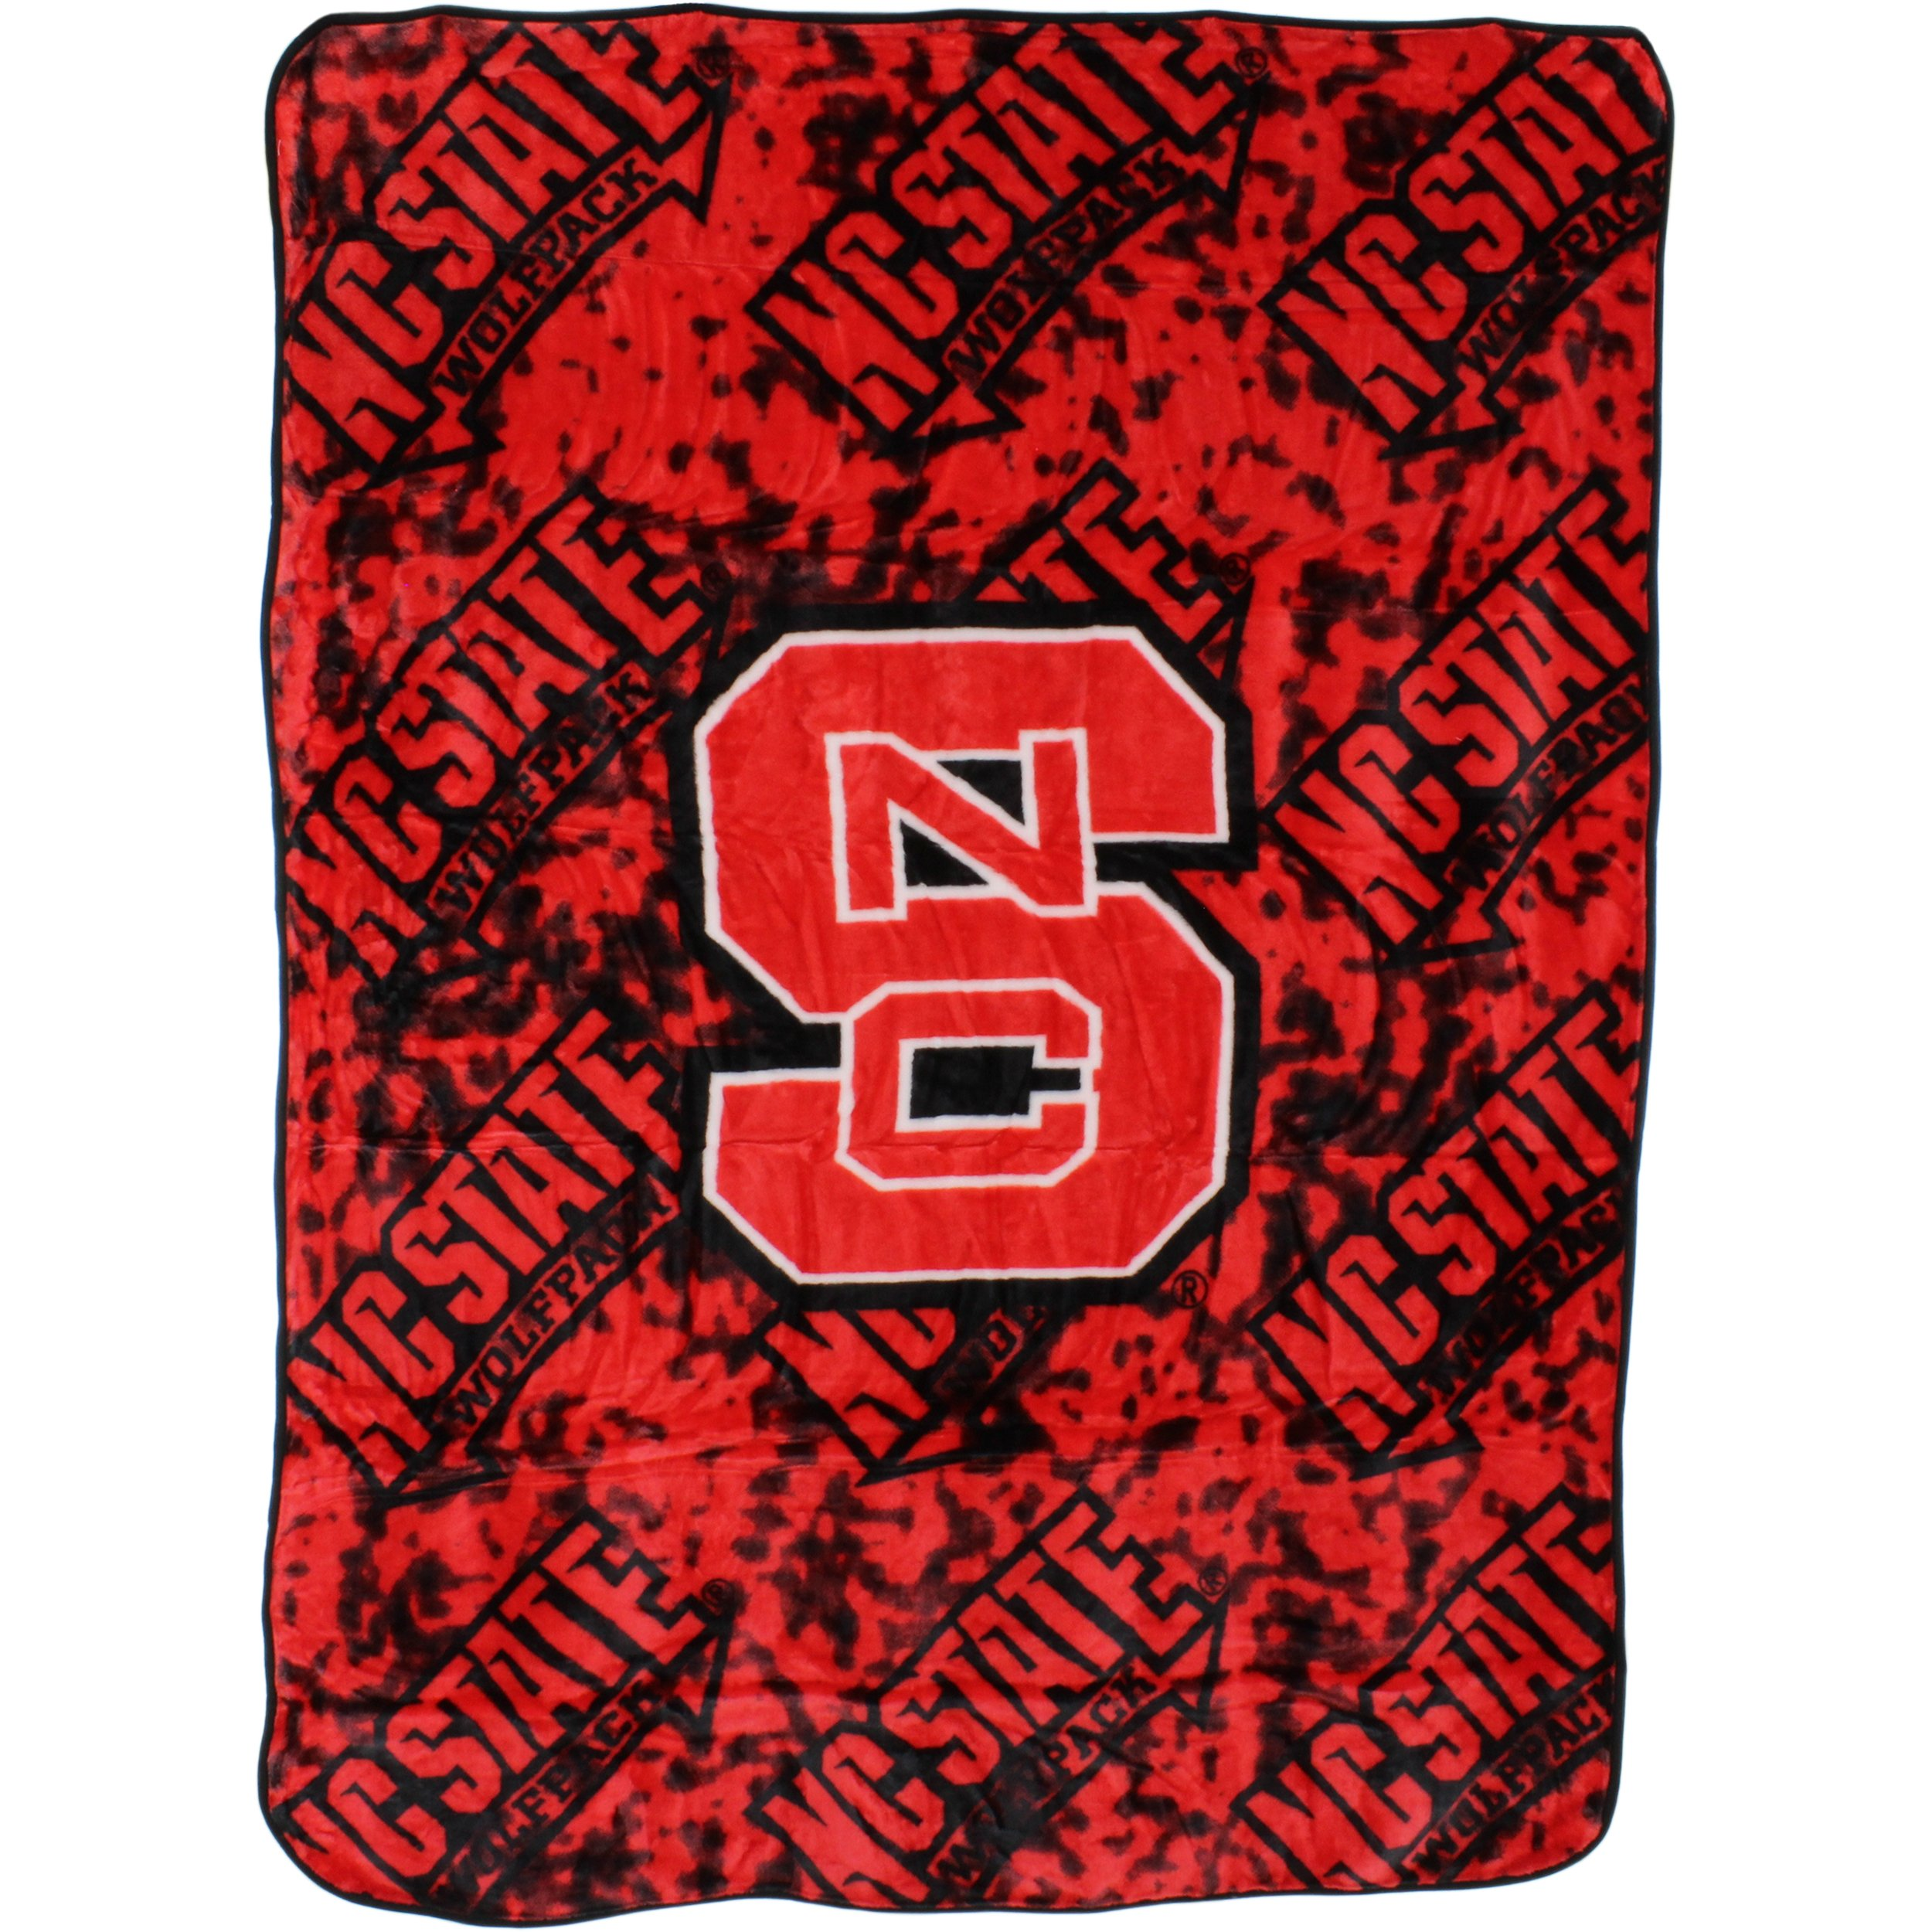 College Covers North Carolina State Wolfpack Throw Blanket/Bedspread